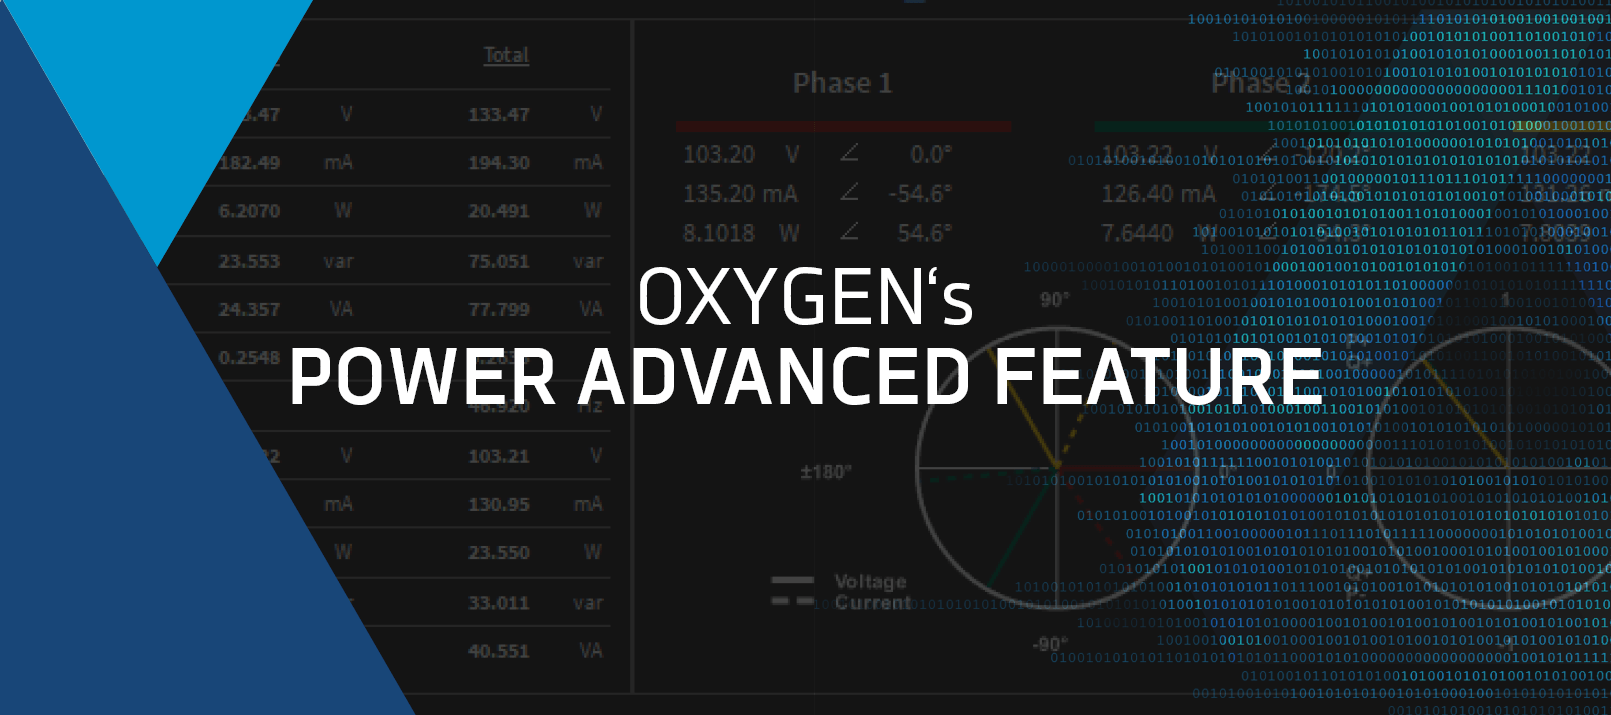 oxygens-power-advanced-feature